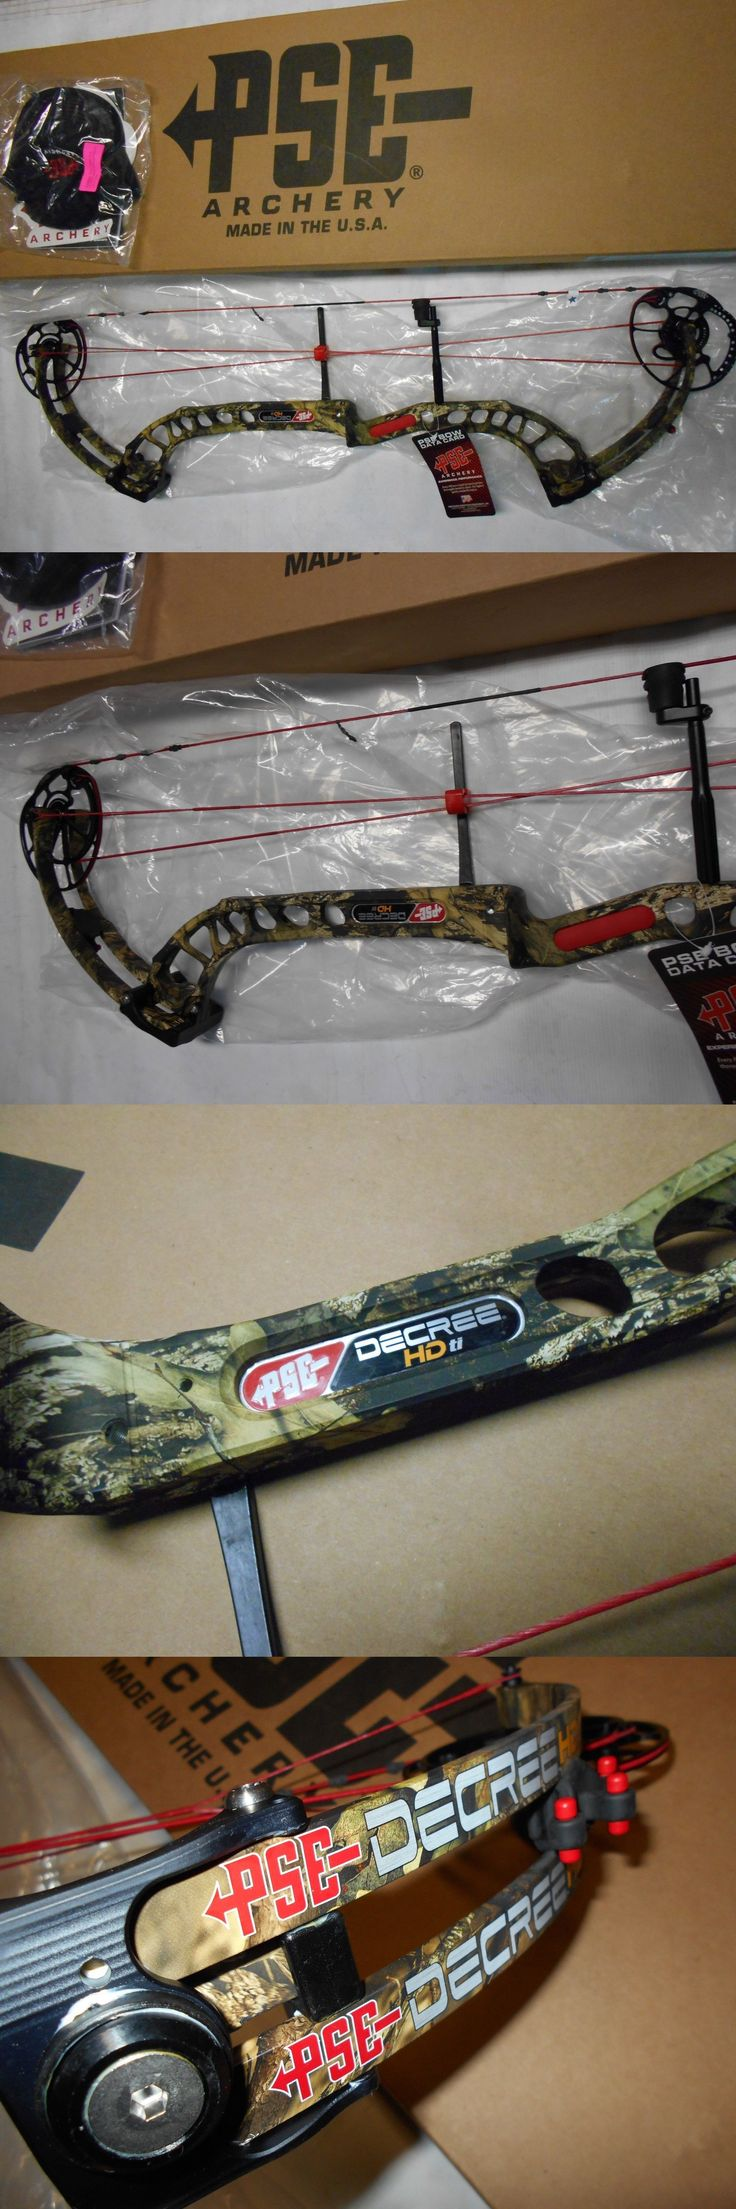 Compound 20838: @New@ 2016 Pse Decree Hd Ti Compound Bow! Rh Camo 25.5-31.5 46-60Lb. -> BUY IT NOW ONLY: $549.99 on eBay!